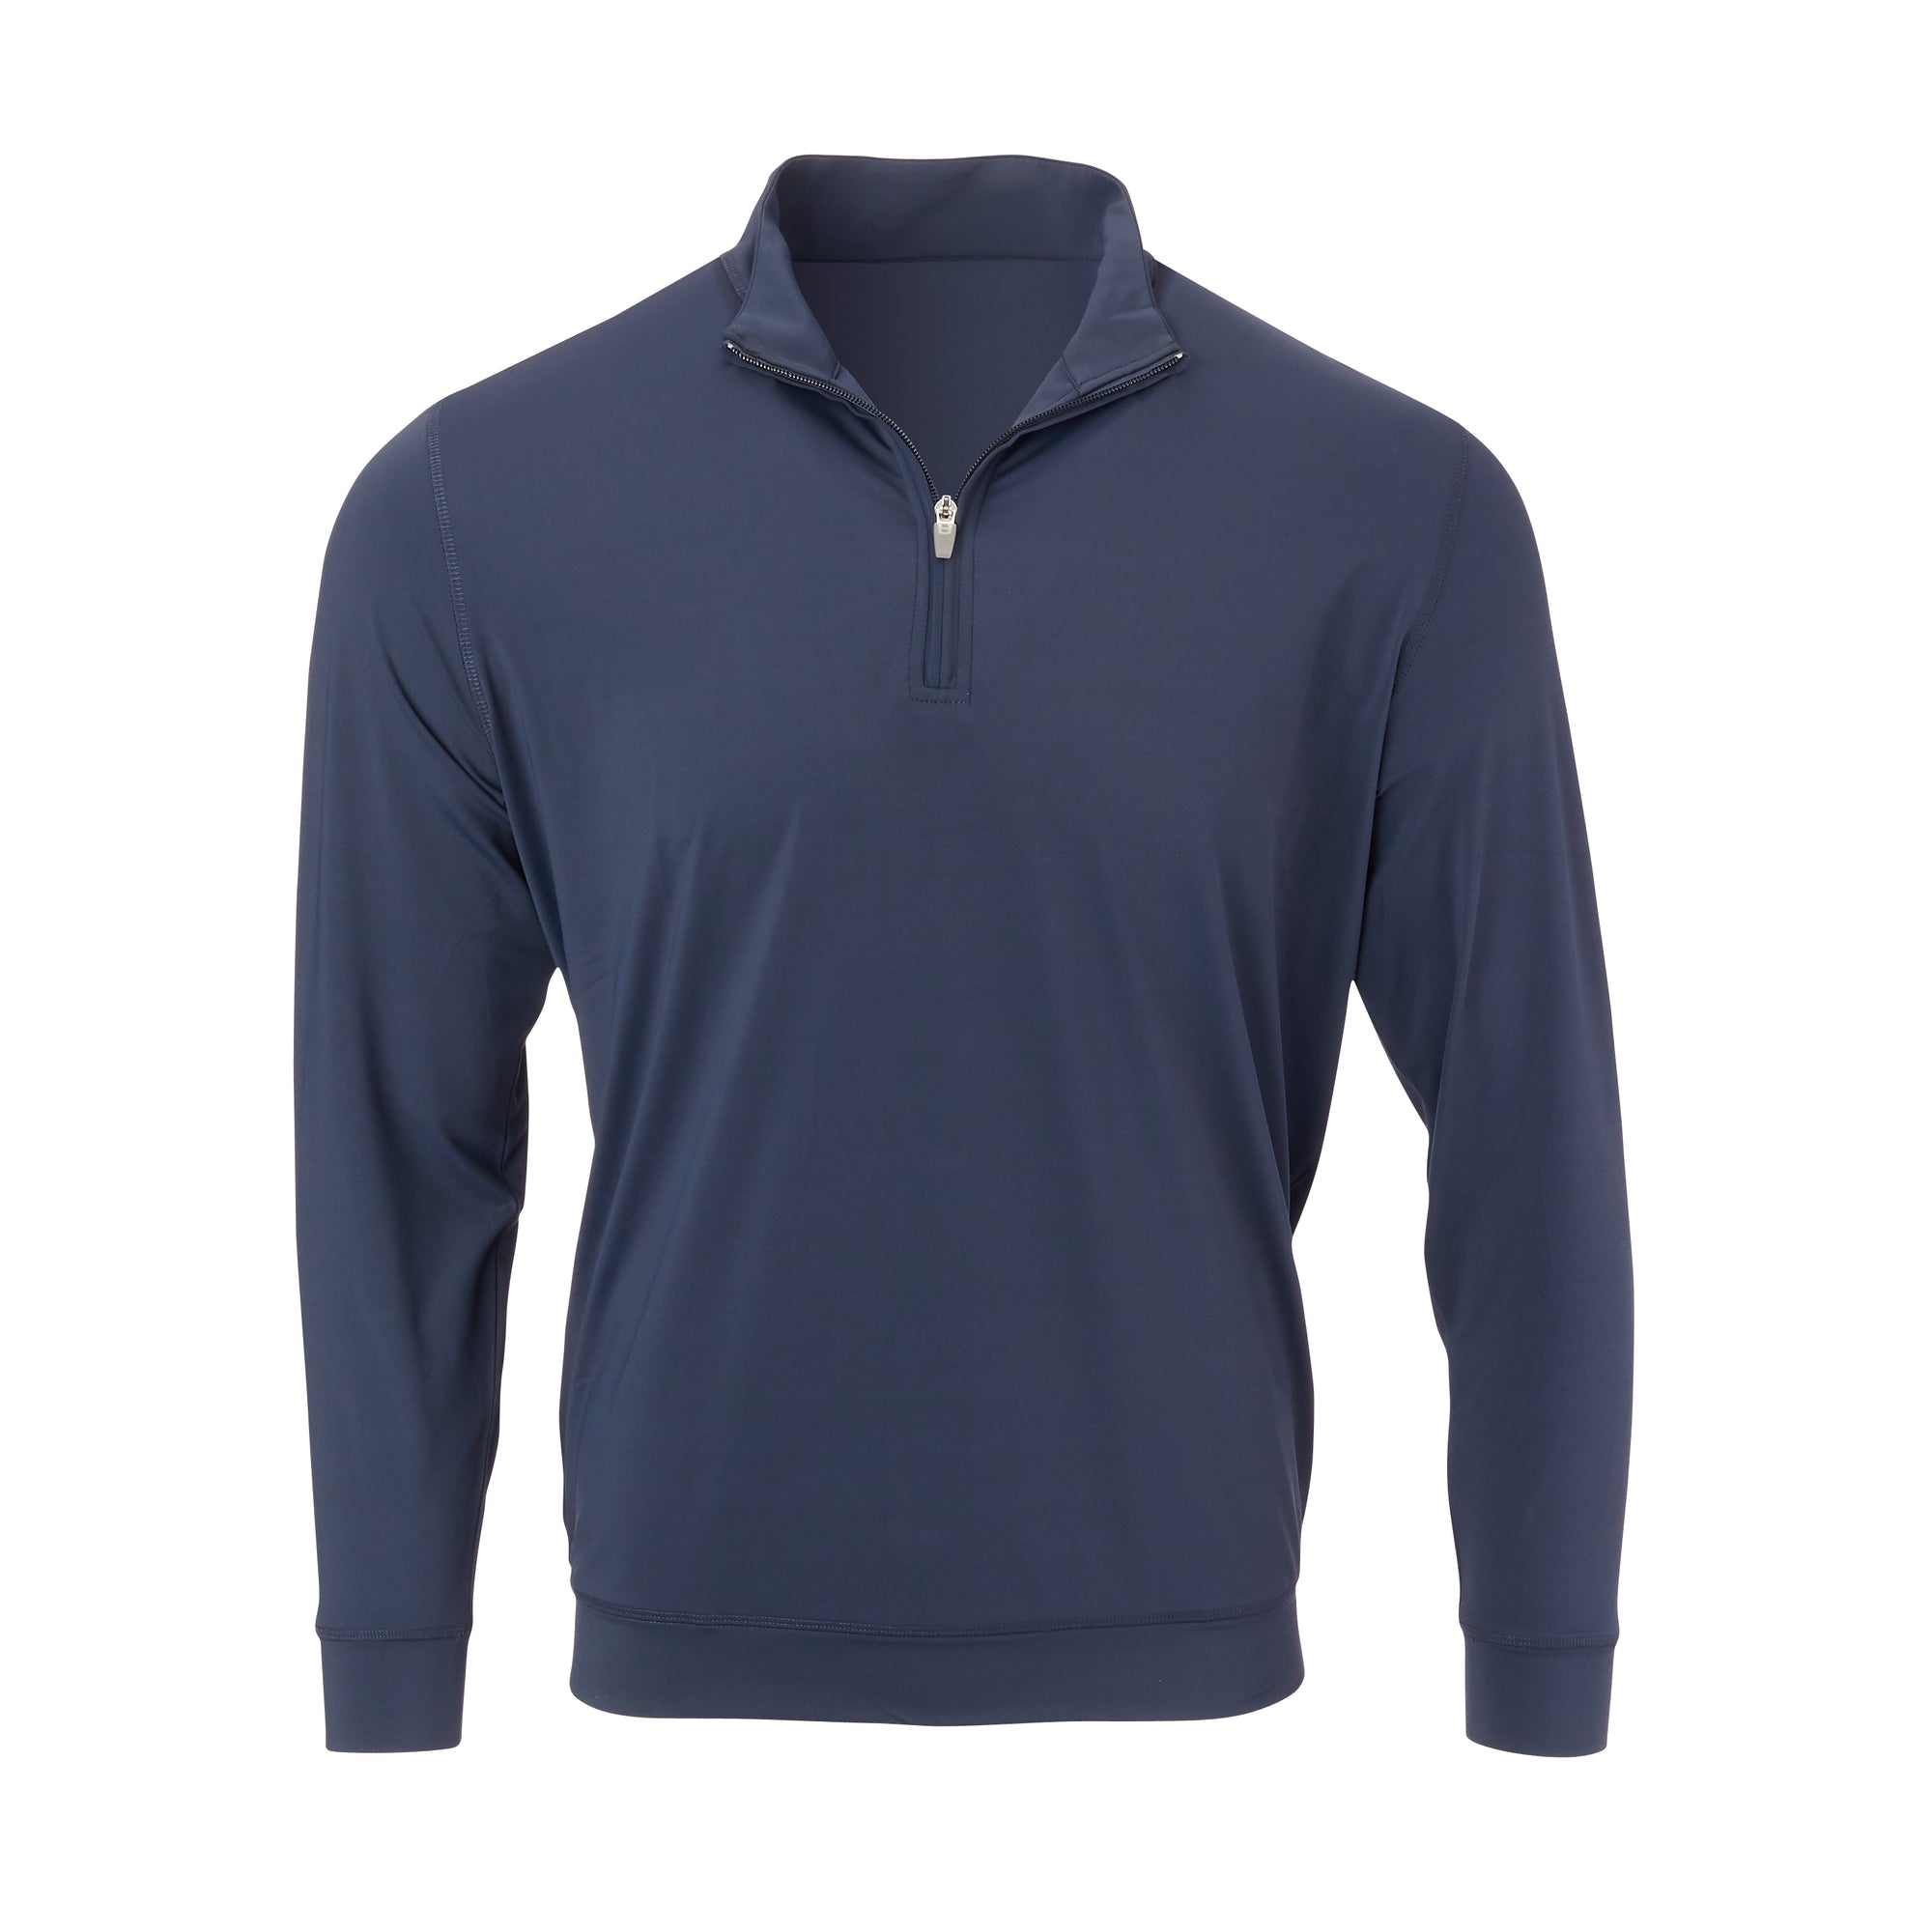 THE CLASSIC LONG SLEEVE HALF ZIP PULLOVER - Navy IS66006